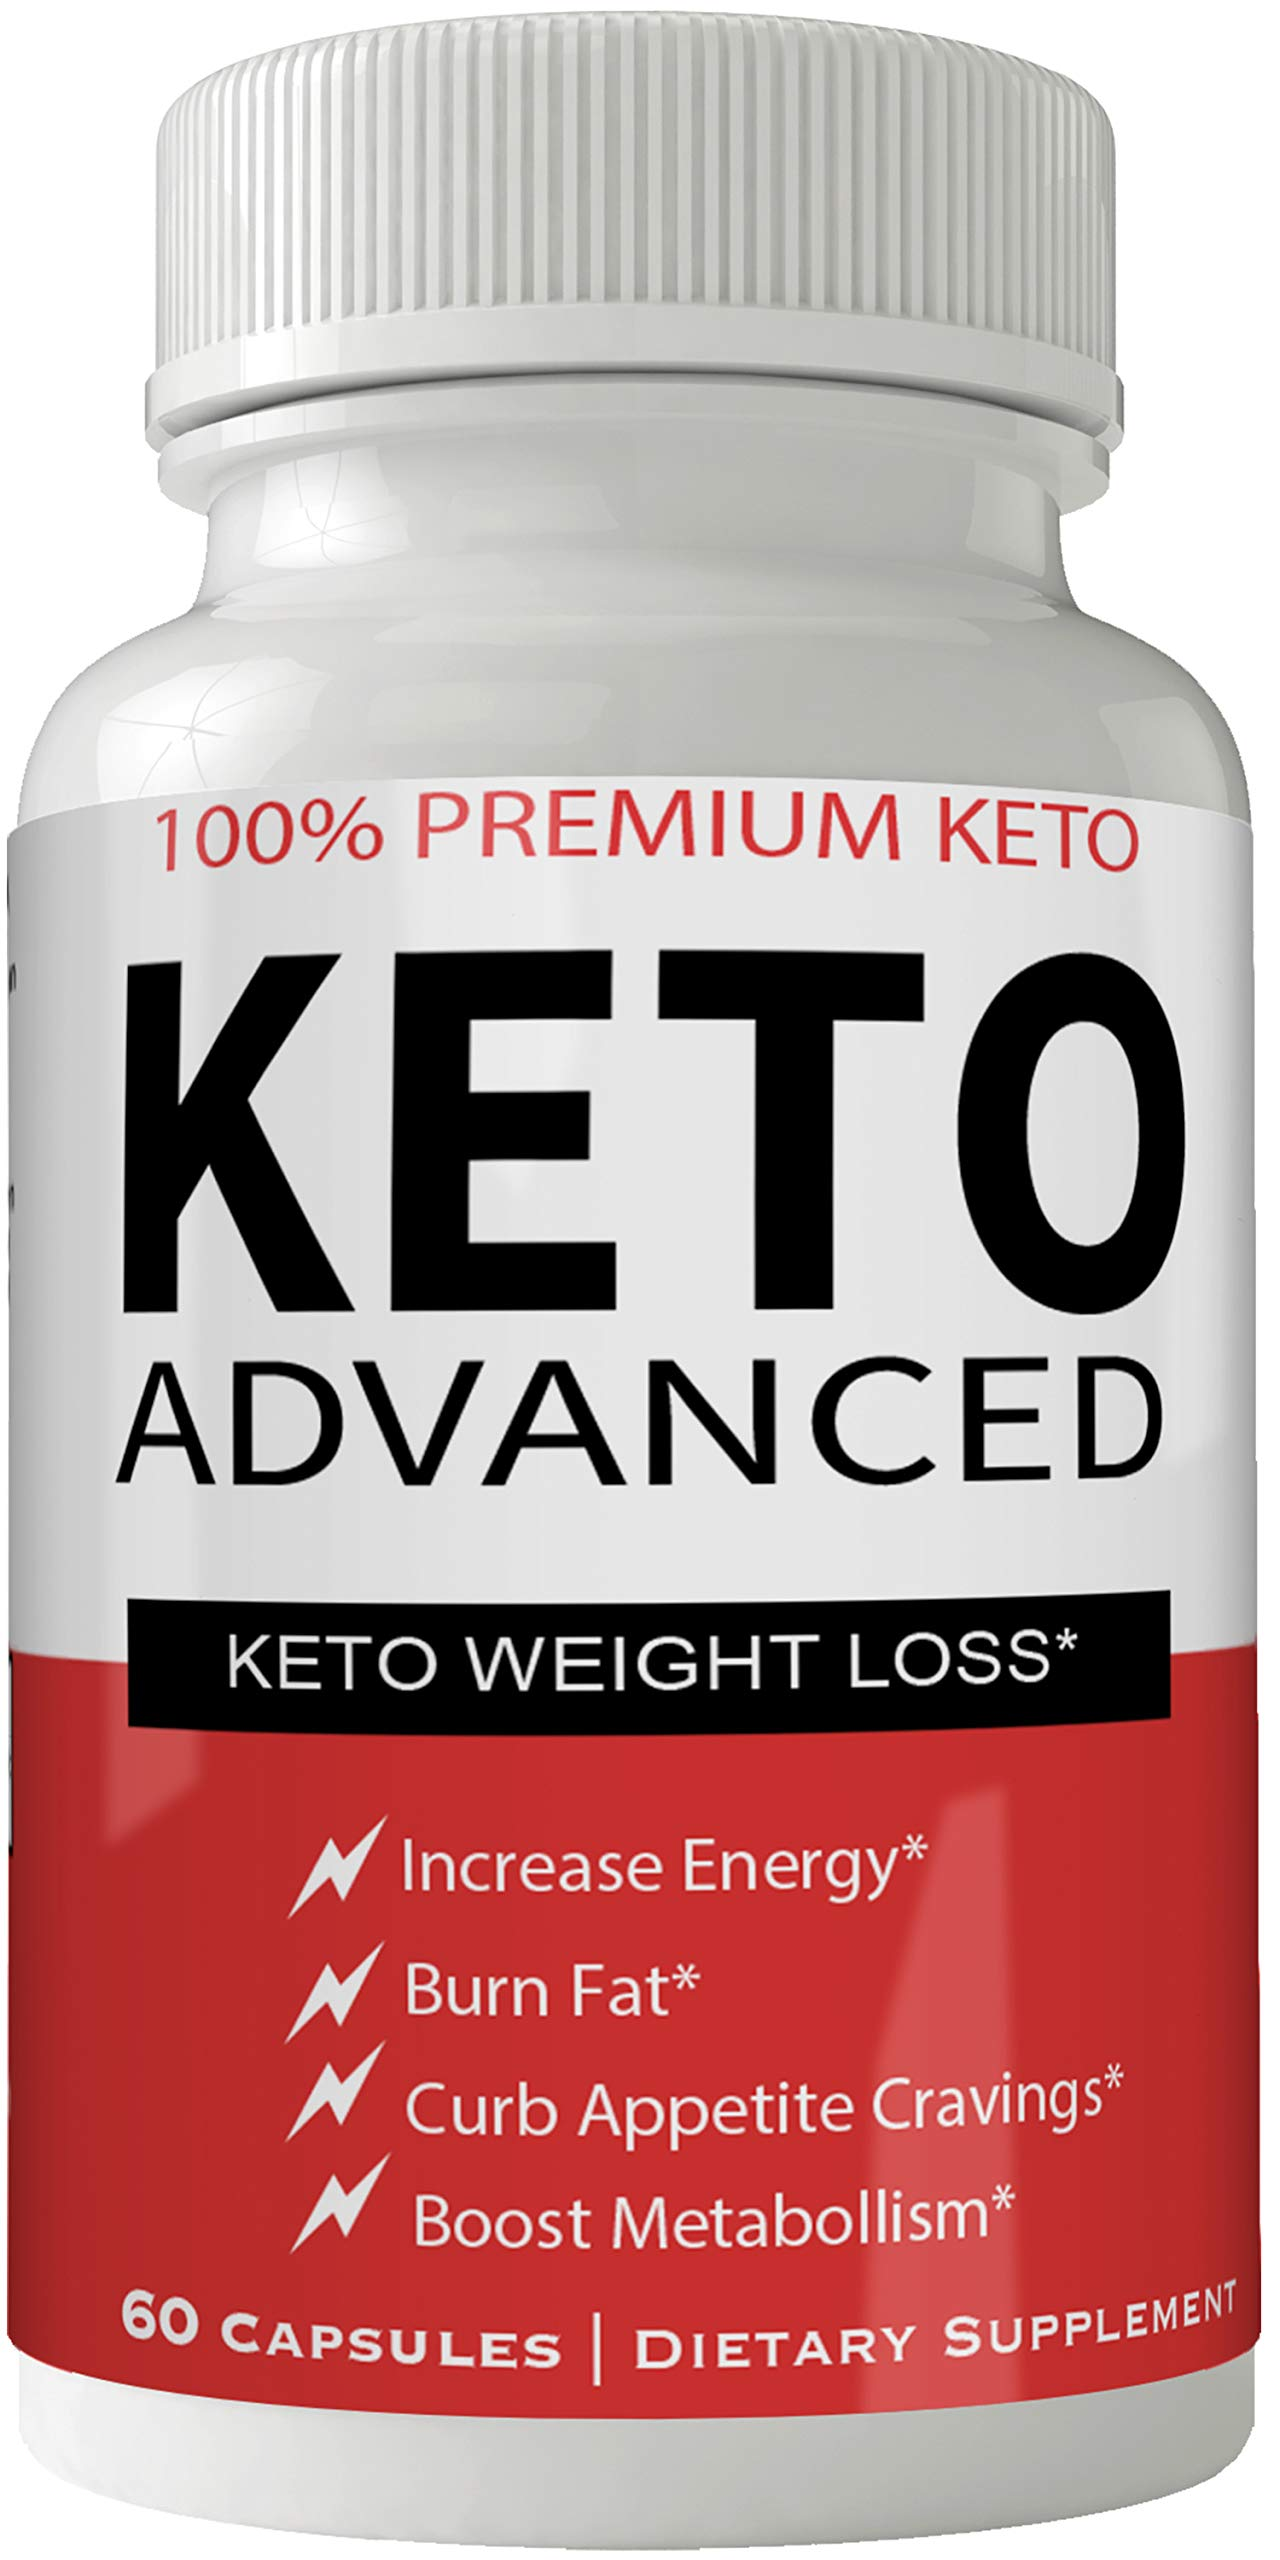 Pastillas Keto para Bajar de Peso Adelgazar Rapido y Quitar Apetito | Appetite Suppressant with Ultra Advanced Natural Ketogenic Capsules to Boost Metabolism, Energy and Focus